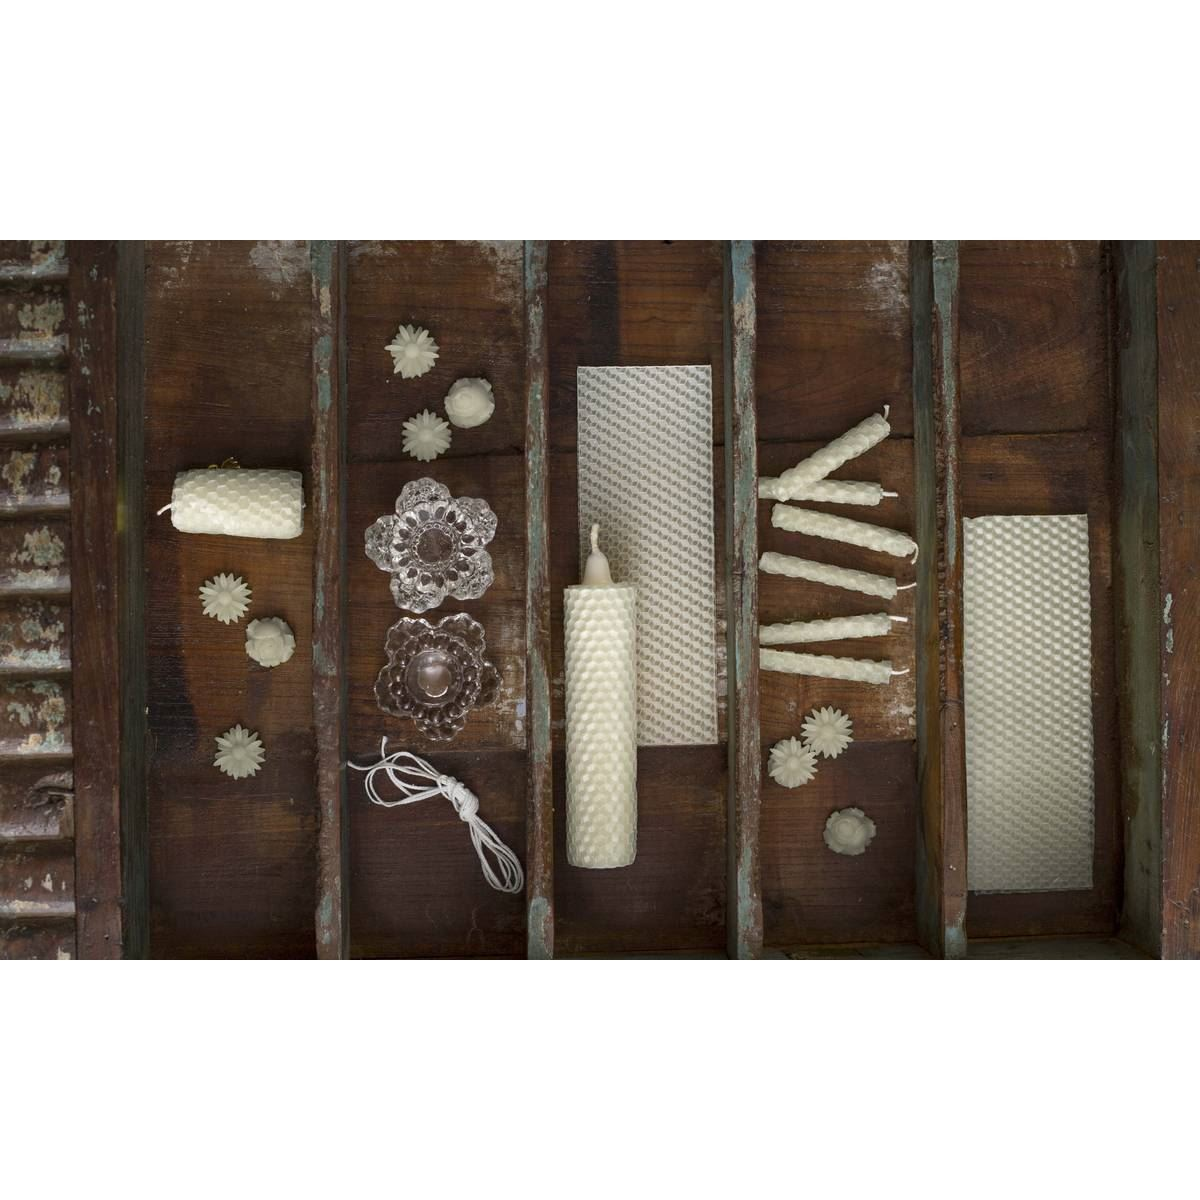 Kirstie Allsopp Beeswax Candle Making Kit Set Basic Create